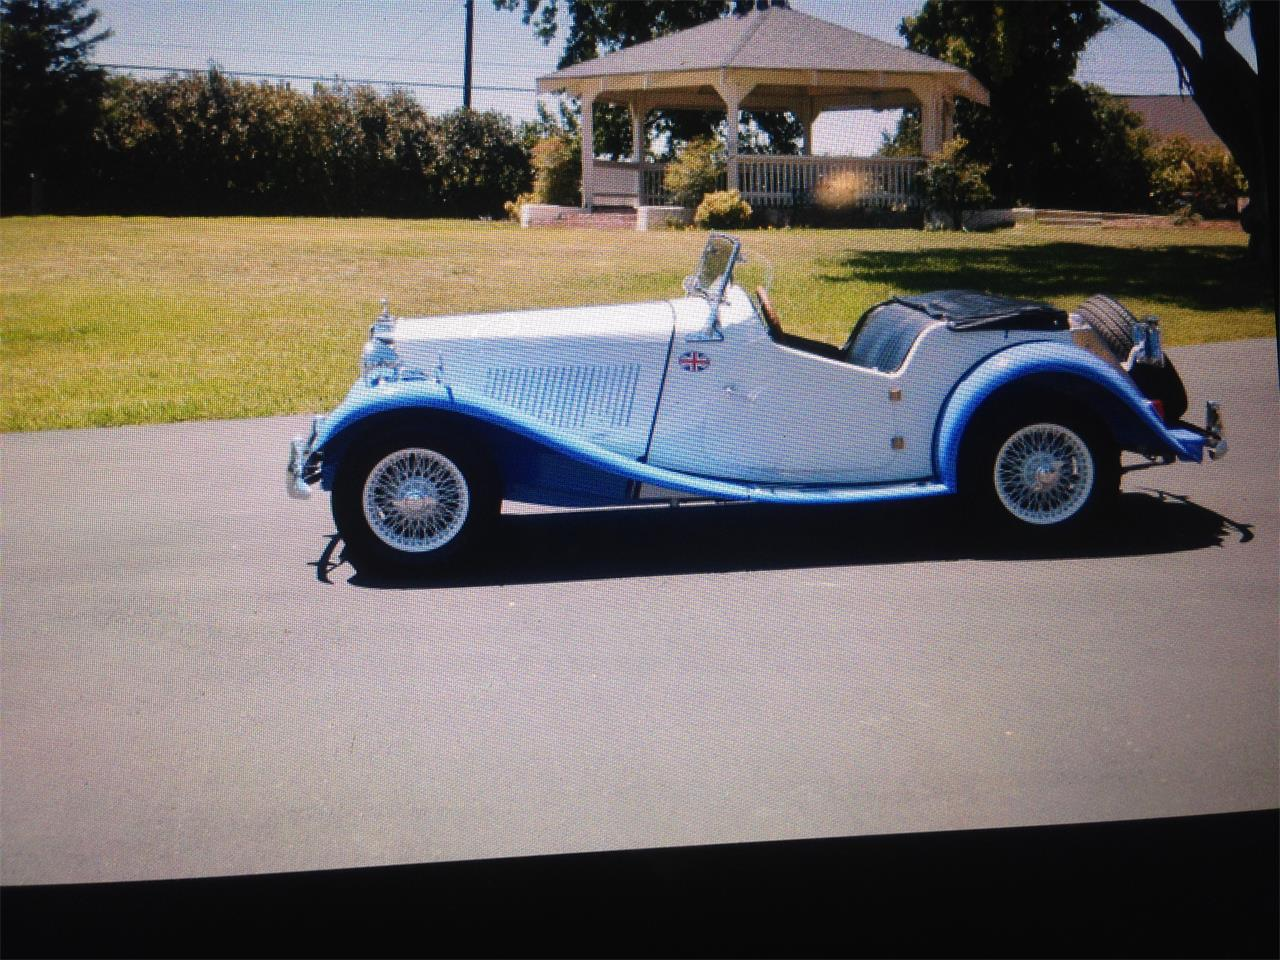 Large Picture of Classic '52 MG TD - FTY3